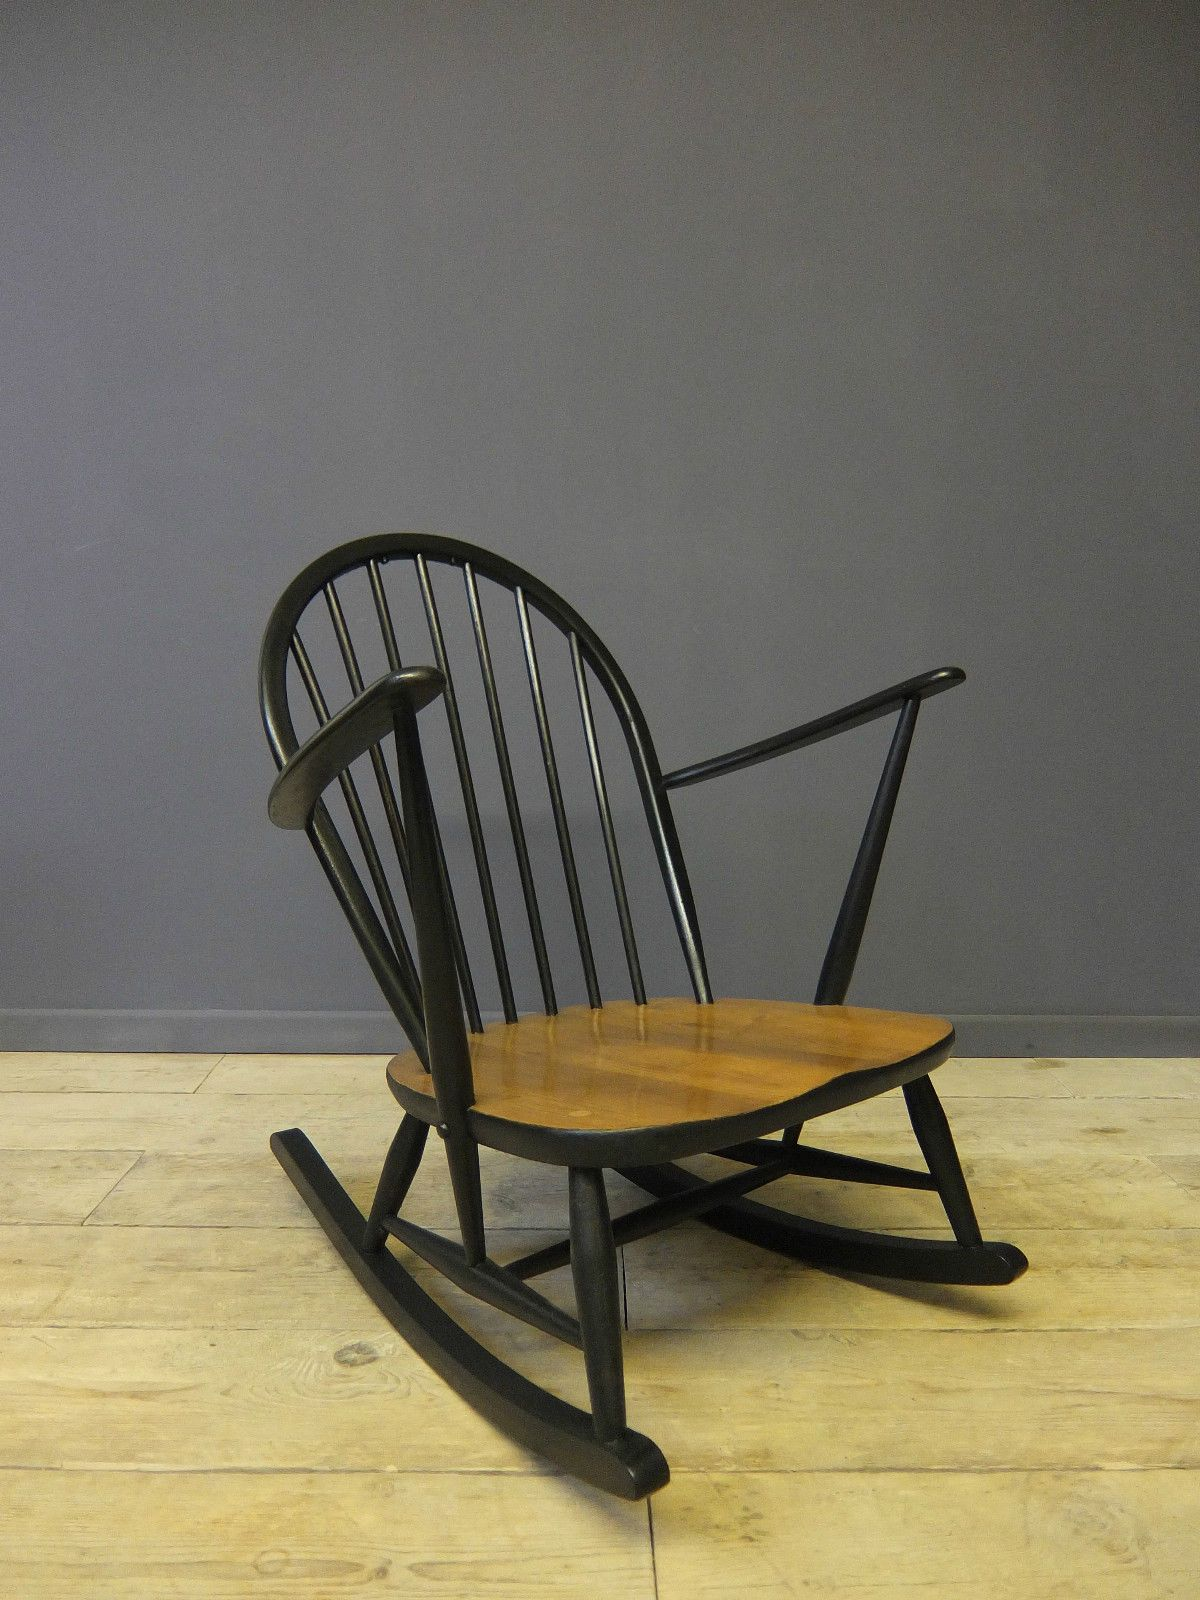 Vintage retro ercol drop leaf round dining kitchen table ebay - Ercol Rocking Chair Mid Century Vintage Retro